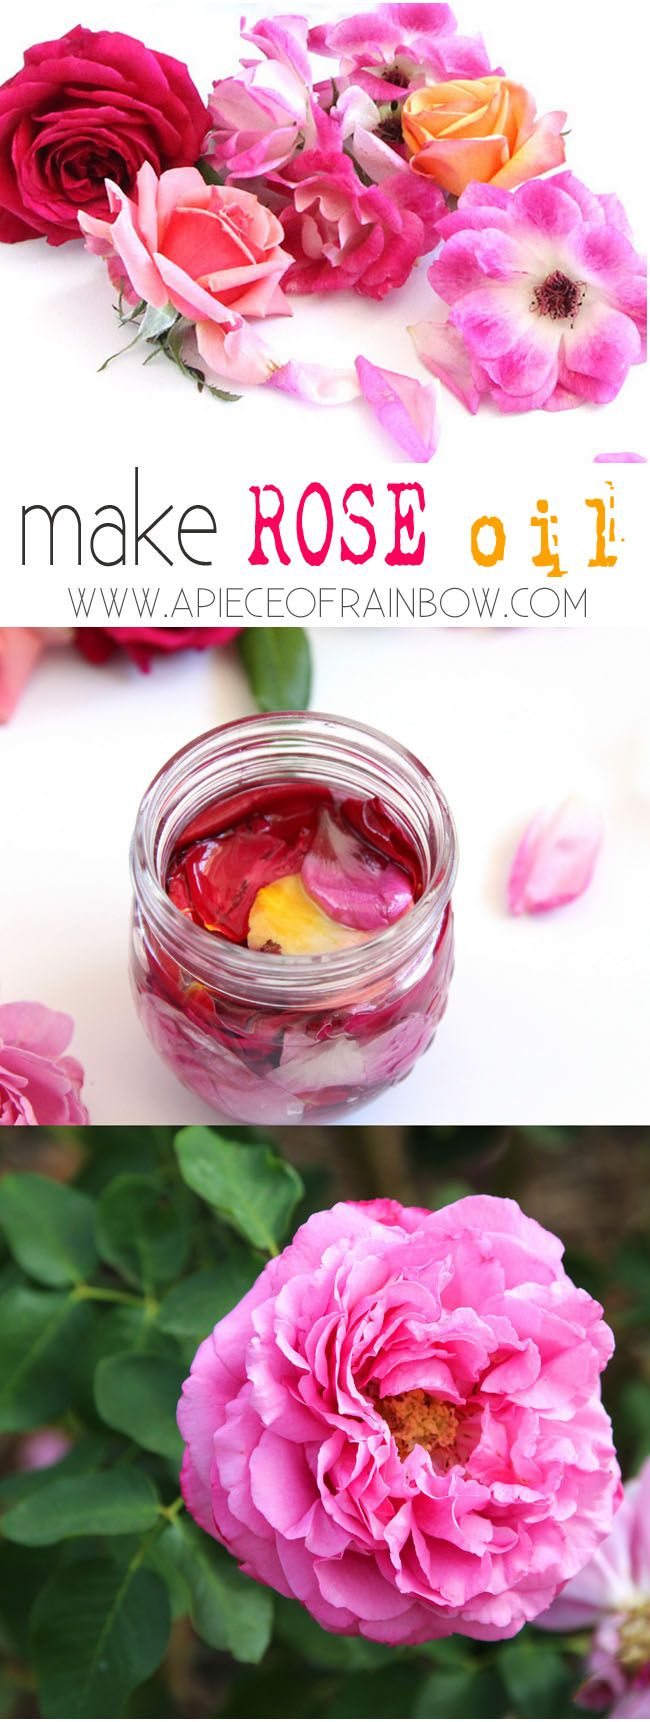 How To Make Rose Oil In A Yogurt Maker